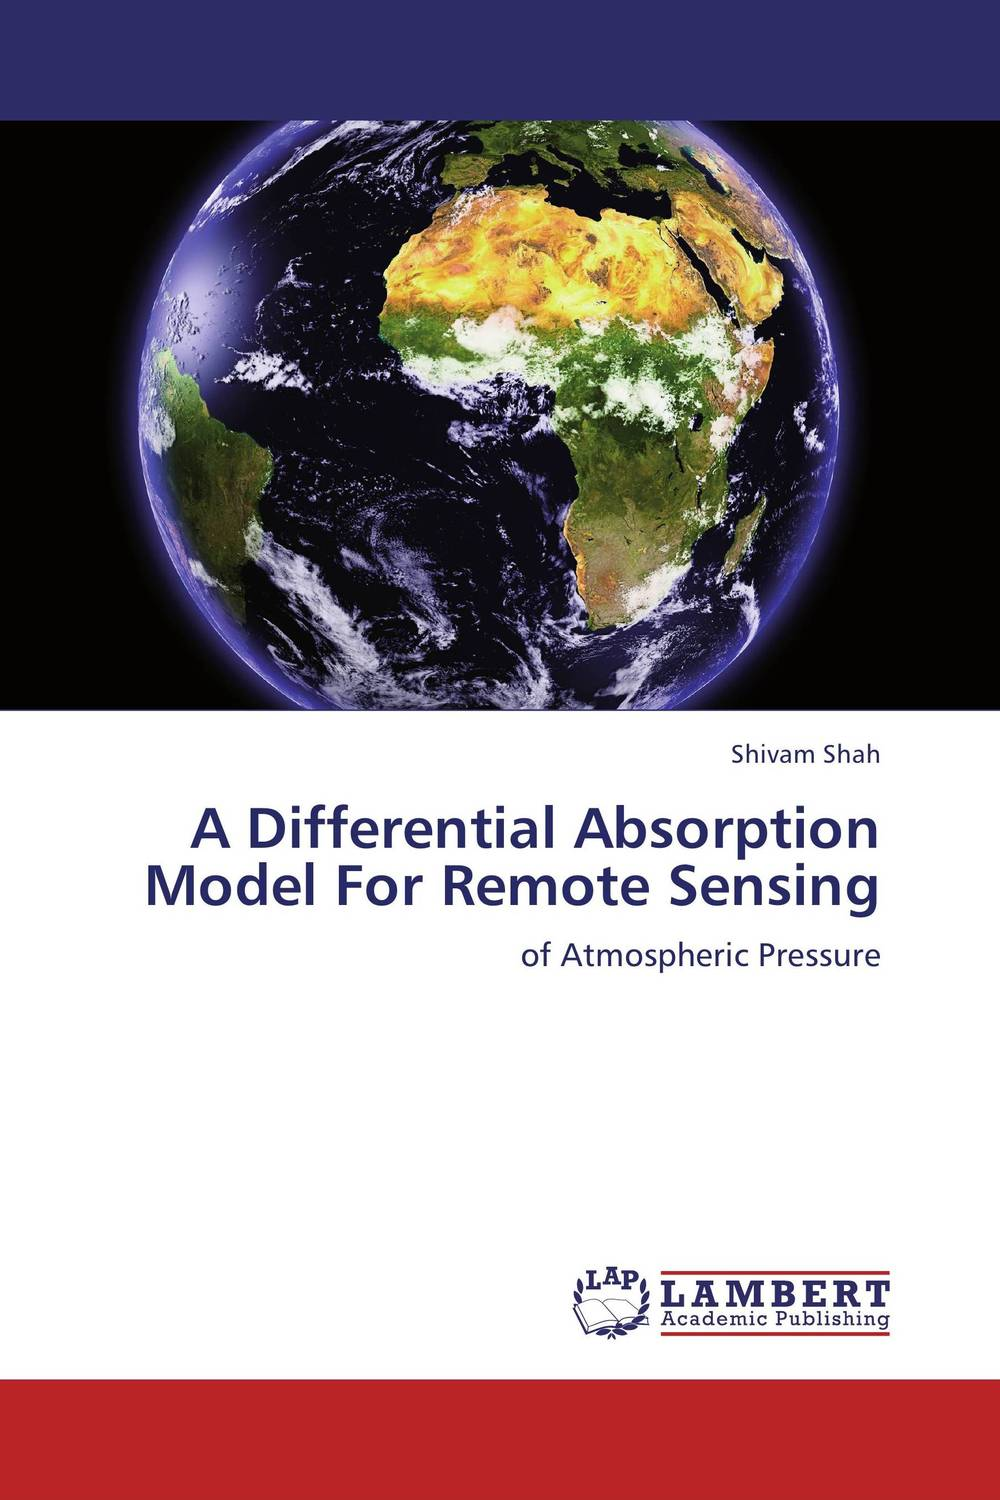 A Differential Absorption Model For Remote Sensing studies on ionospheric irregularities using remote sensing techniques